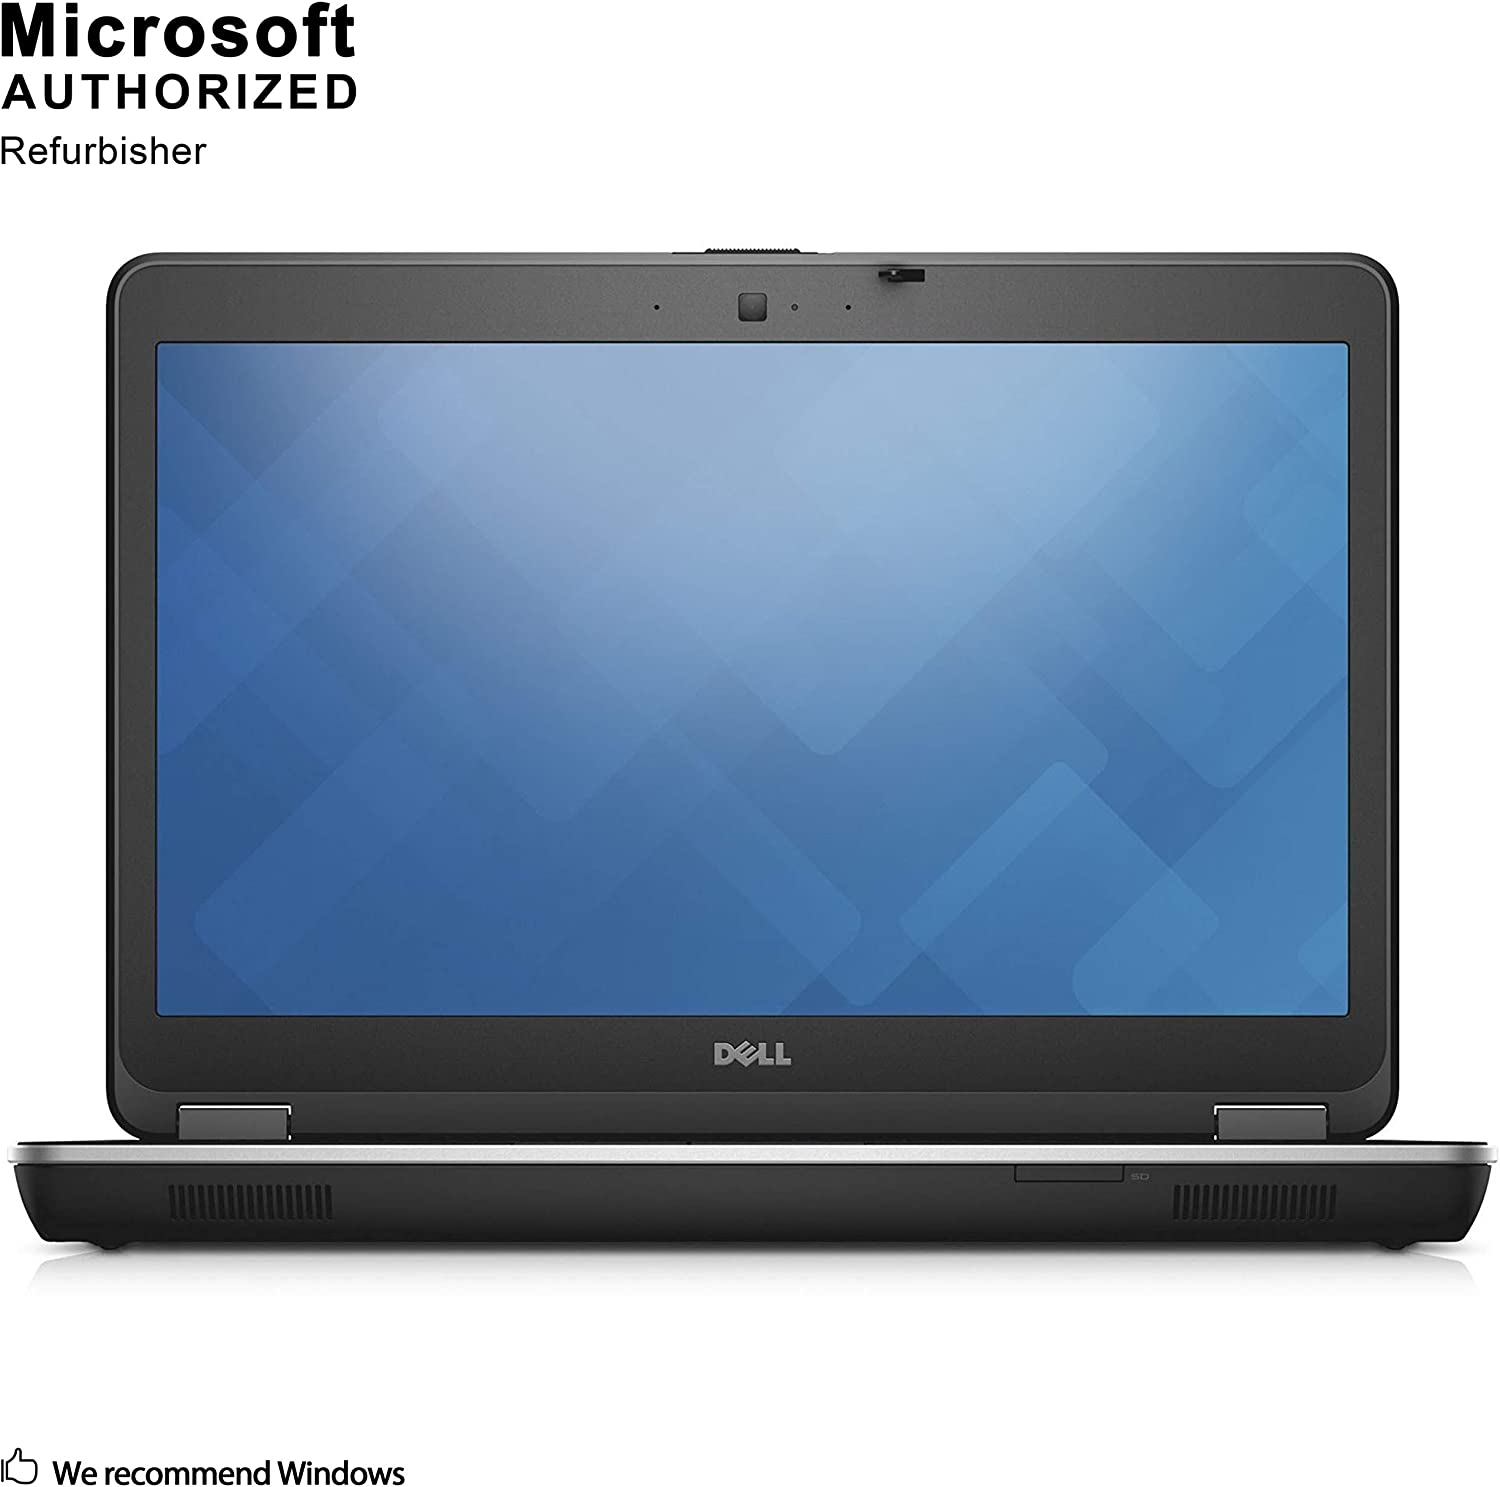 Dell Latitude E6440 14 Inch Business Laptop, Intel Core i5-4200M up to 3.1GHz, 8G DDR3, 120G SSD, DVDRW, VGA, HDMI, Win 10 Pro 64 Bit Multi-Language Support English/French/Spanish(Renewed)